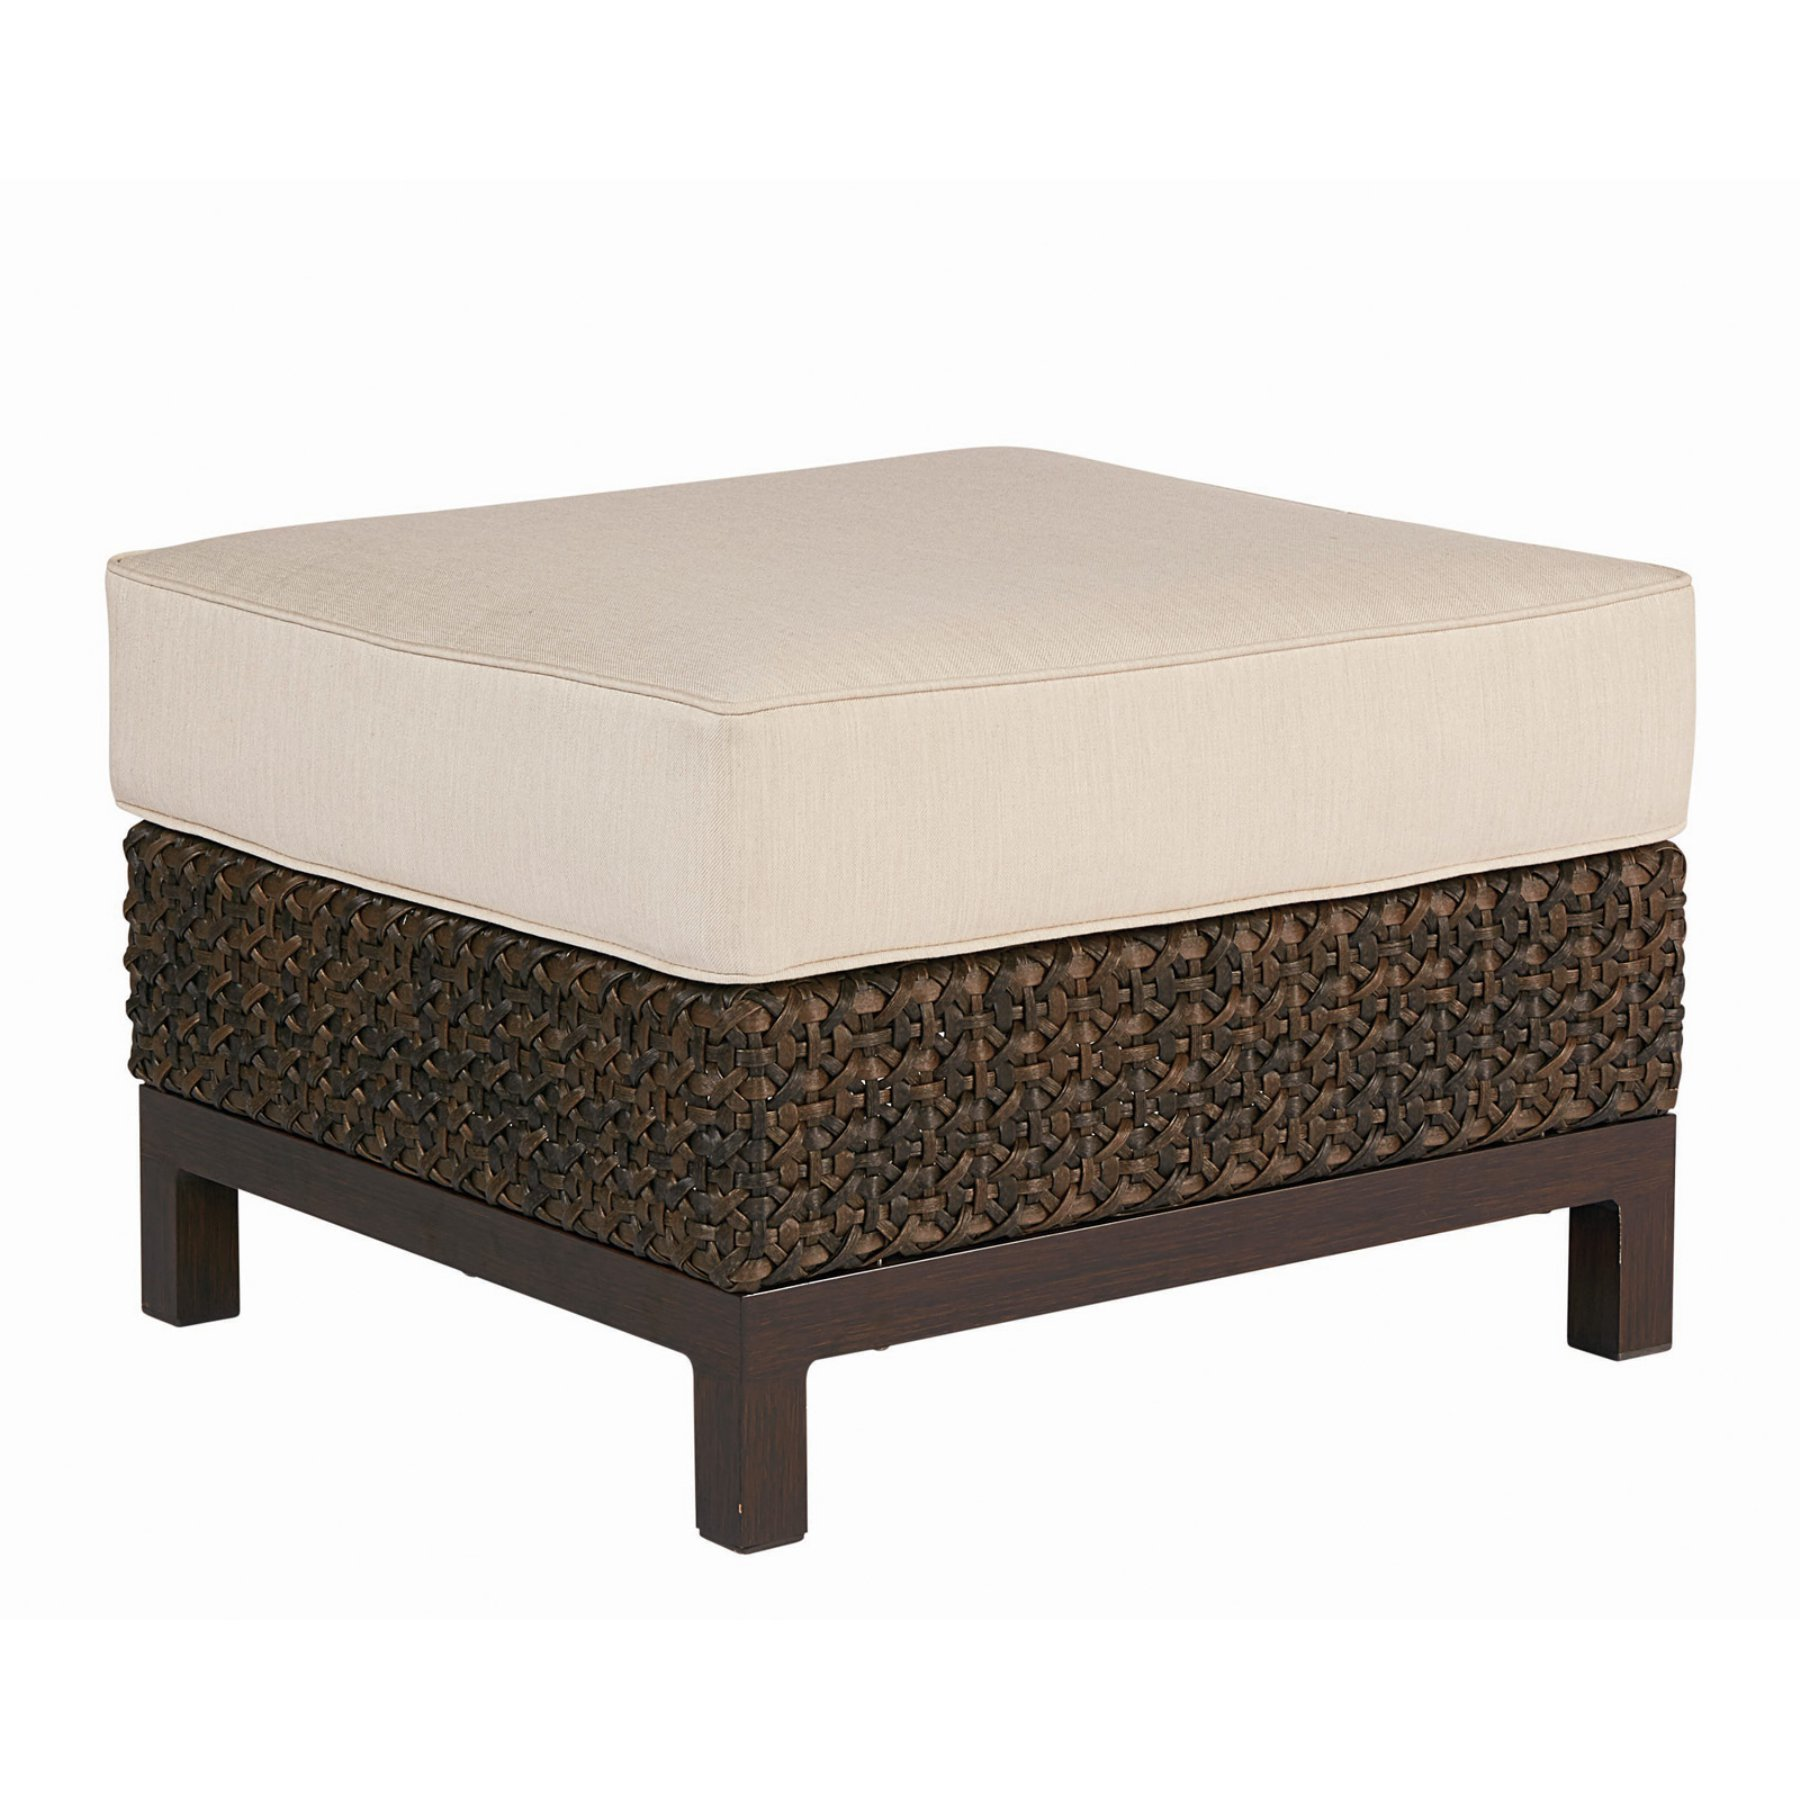 Art Furniture Epicenters Outdoor Brentwood Wicker Ottoman  923504 4114